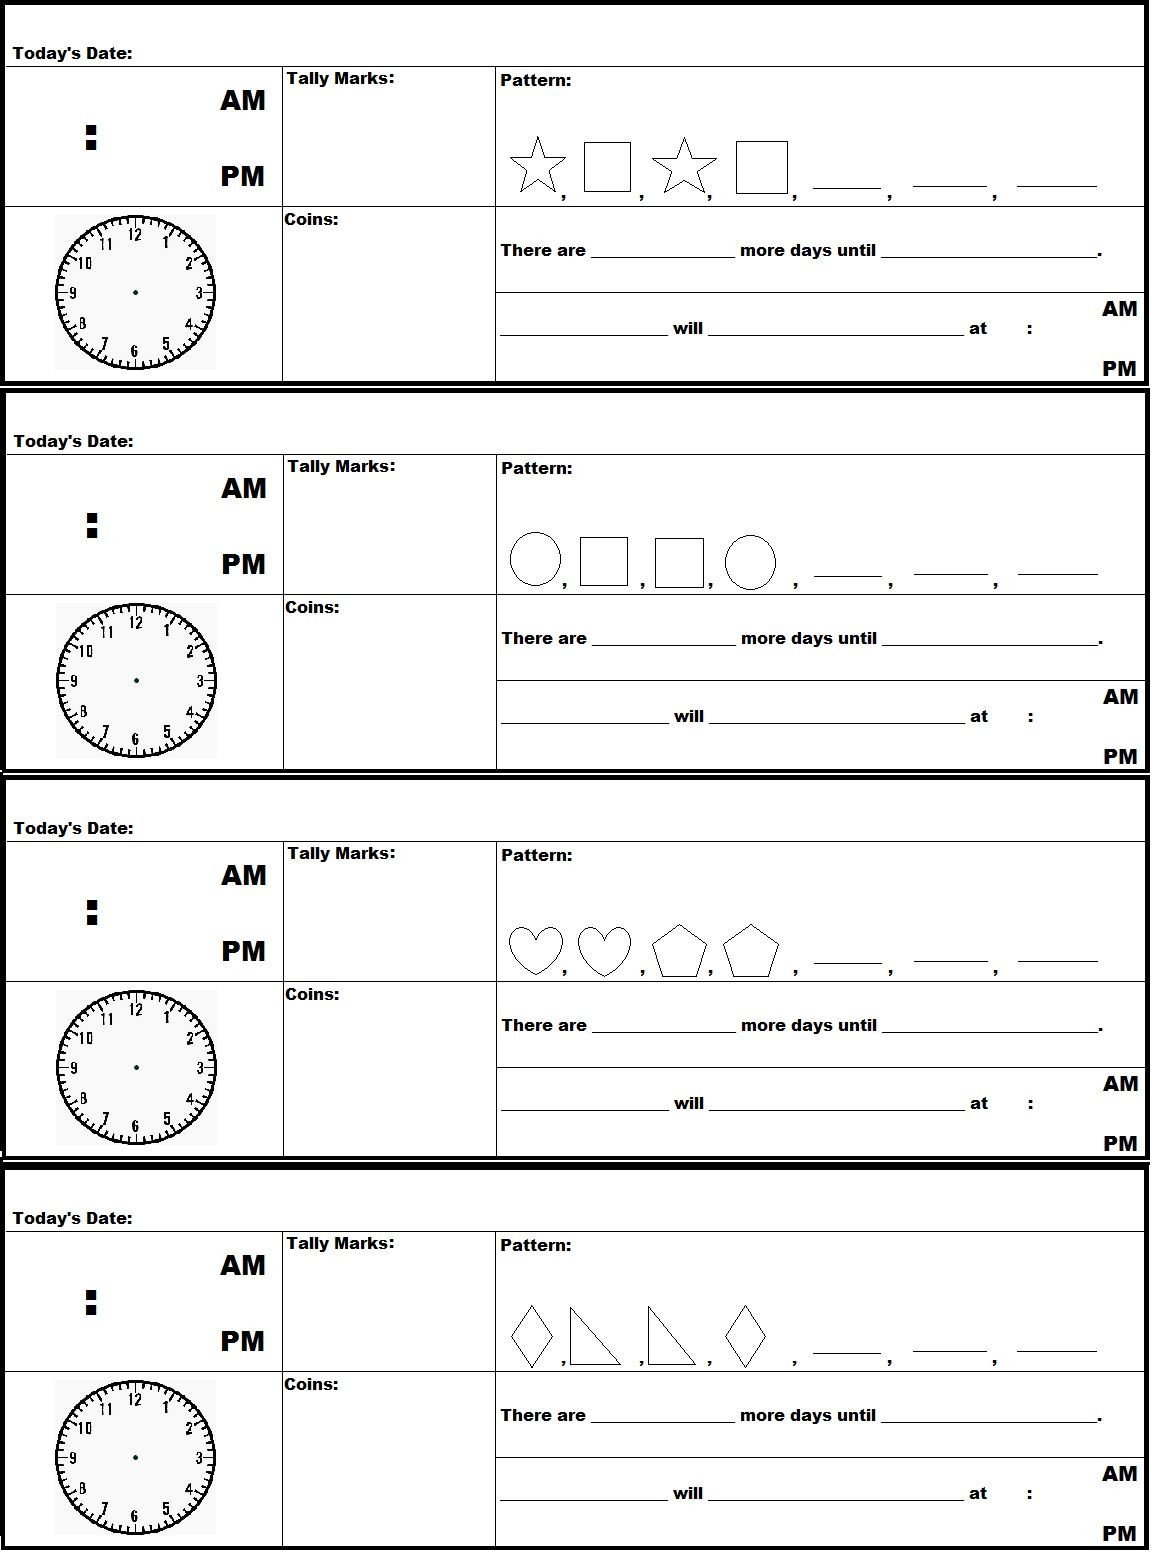 Saxon Math Second Grade Worksheets A Free Printable Document Of Saxon Math 2nd Grade Meeting